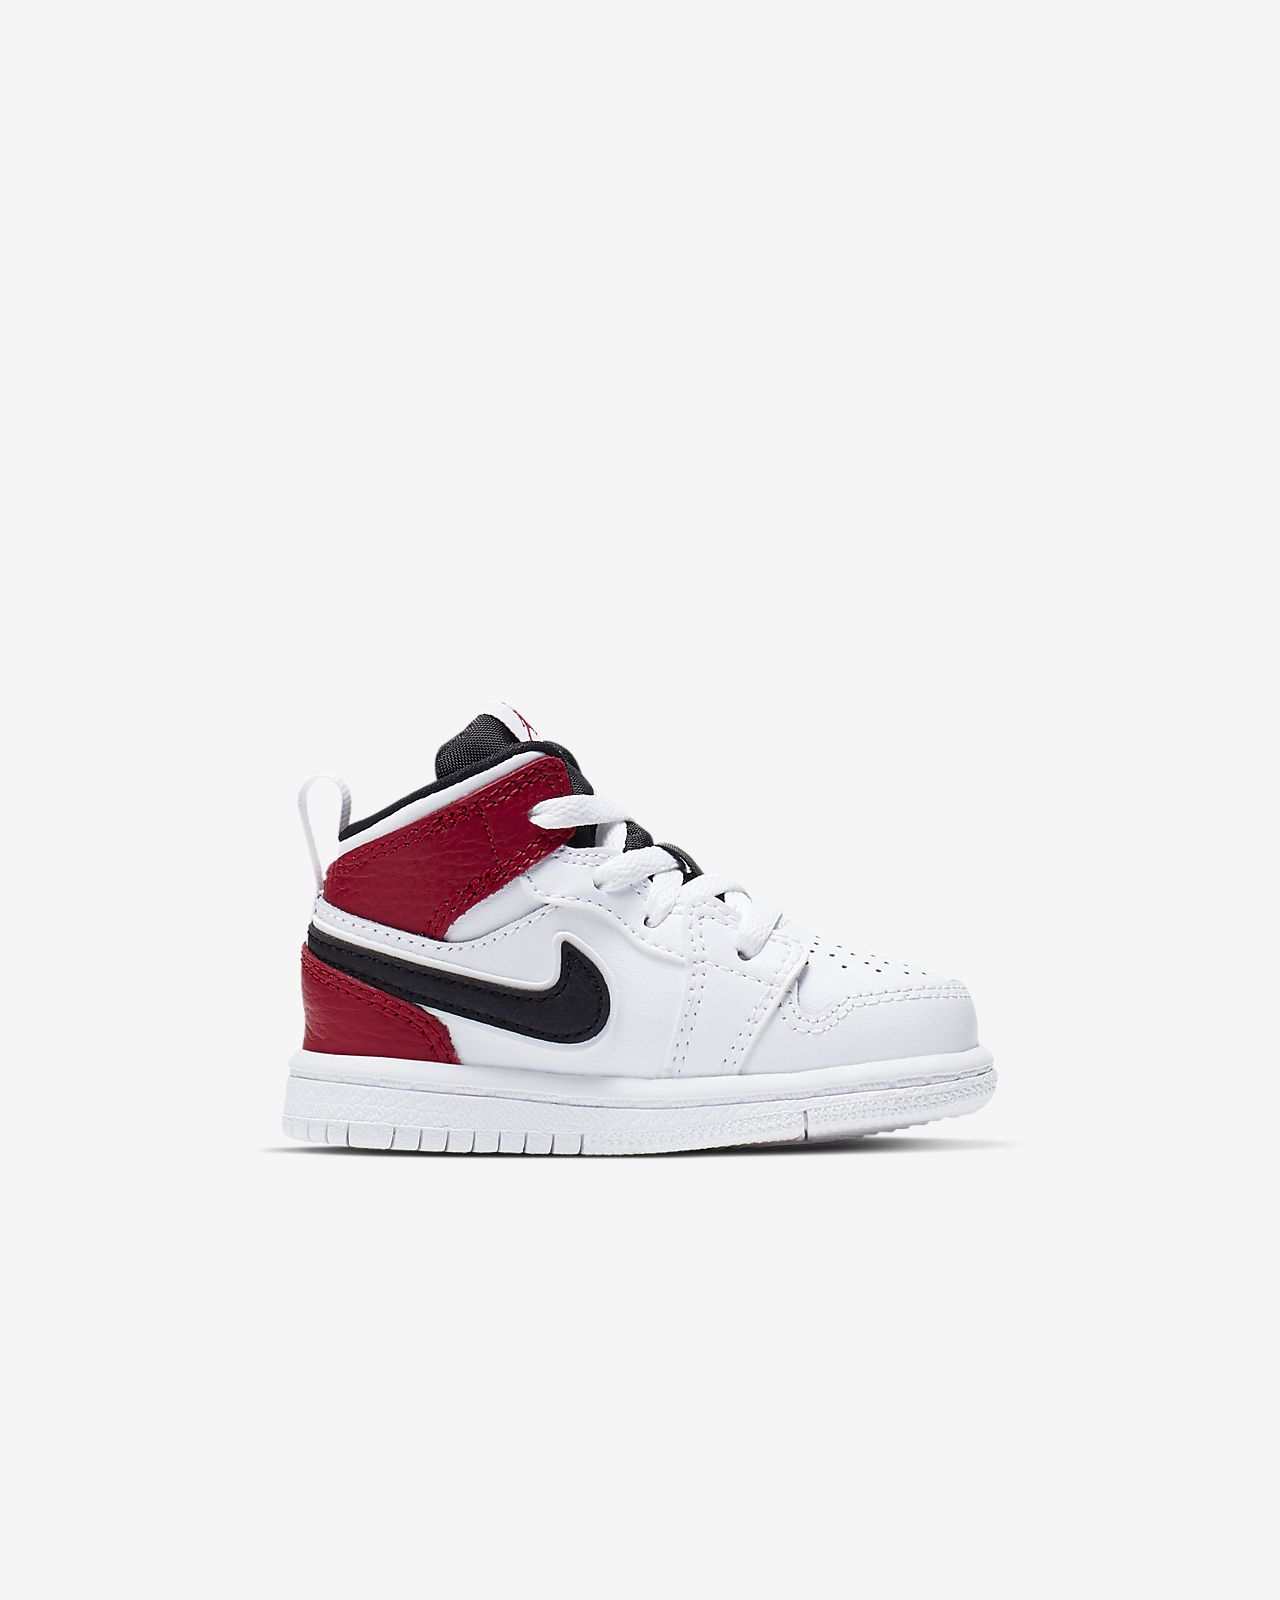 9d72ec1cd5a Air Jordan 1 Mid Infant Toddler Shoe. Nike.com